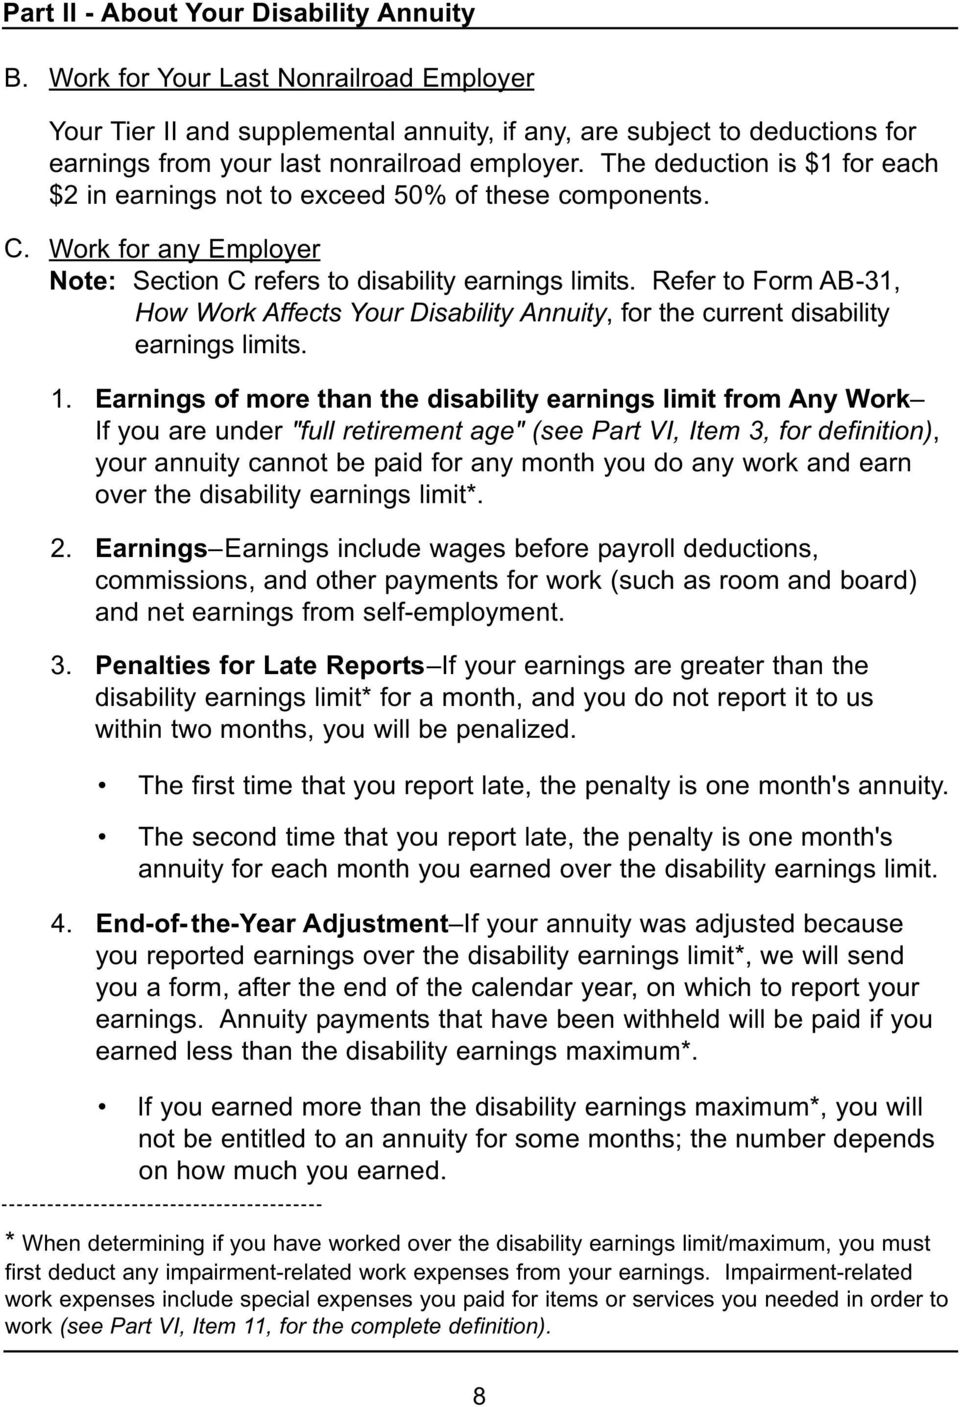 The deduction is $1 for each $2 in earnings not to exceed 50% of these components. C. Work for any Employer Note: Section C refers to disability earnings limits.